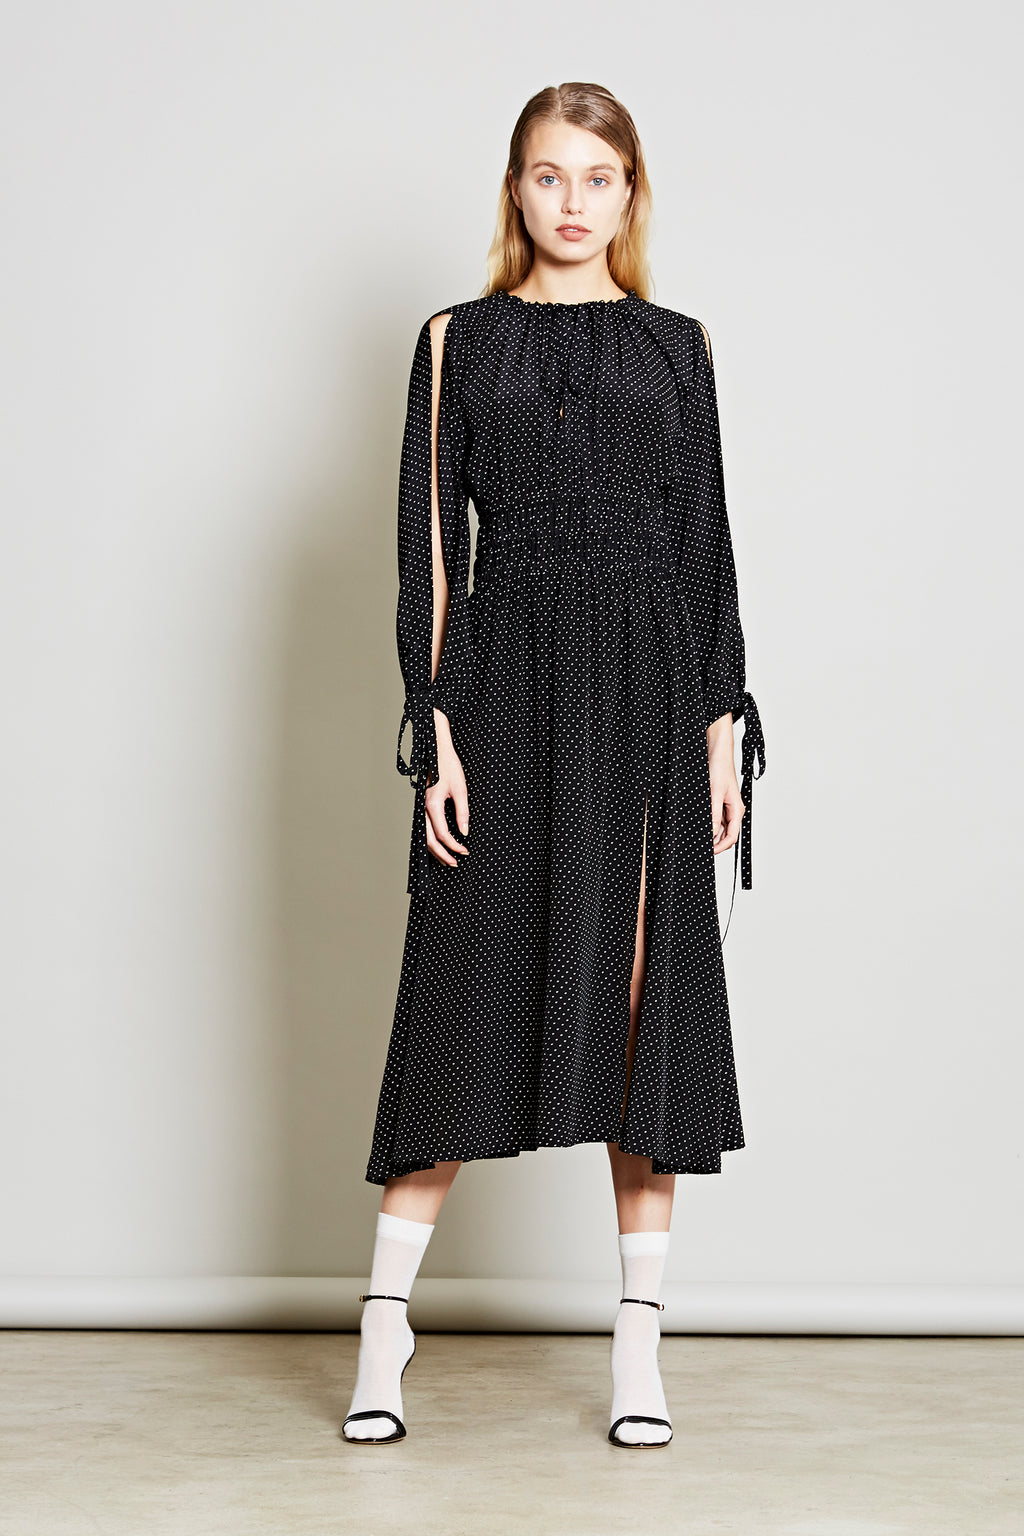 Robert Rodriguez Studio Women's Designer Fashion Resort 2018 Cold Shoulder Polka Dot Dress